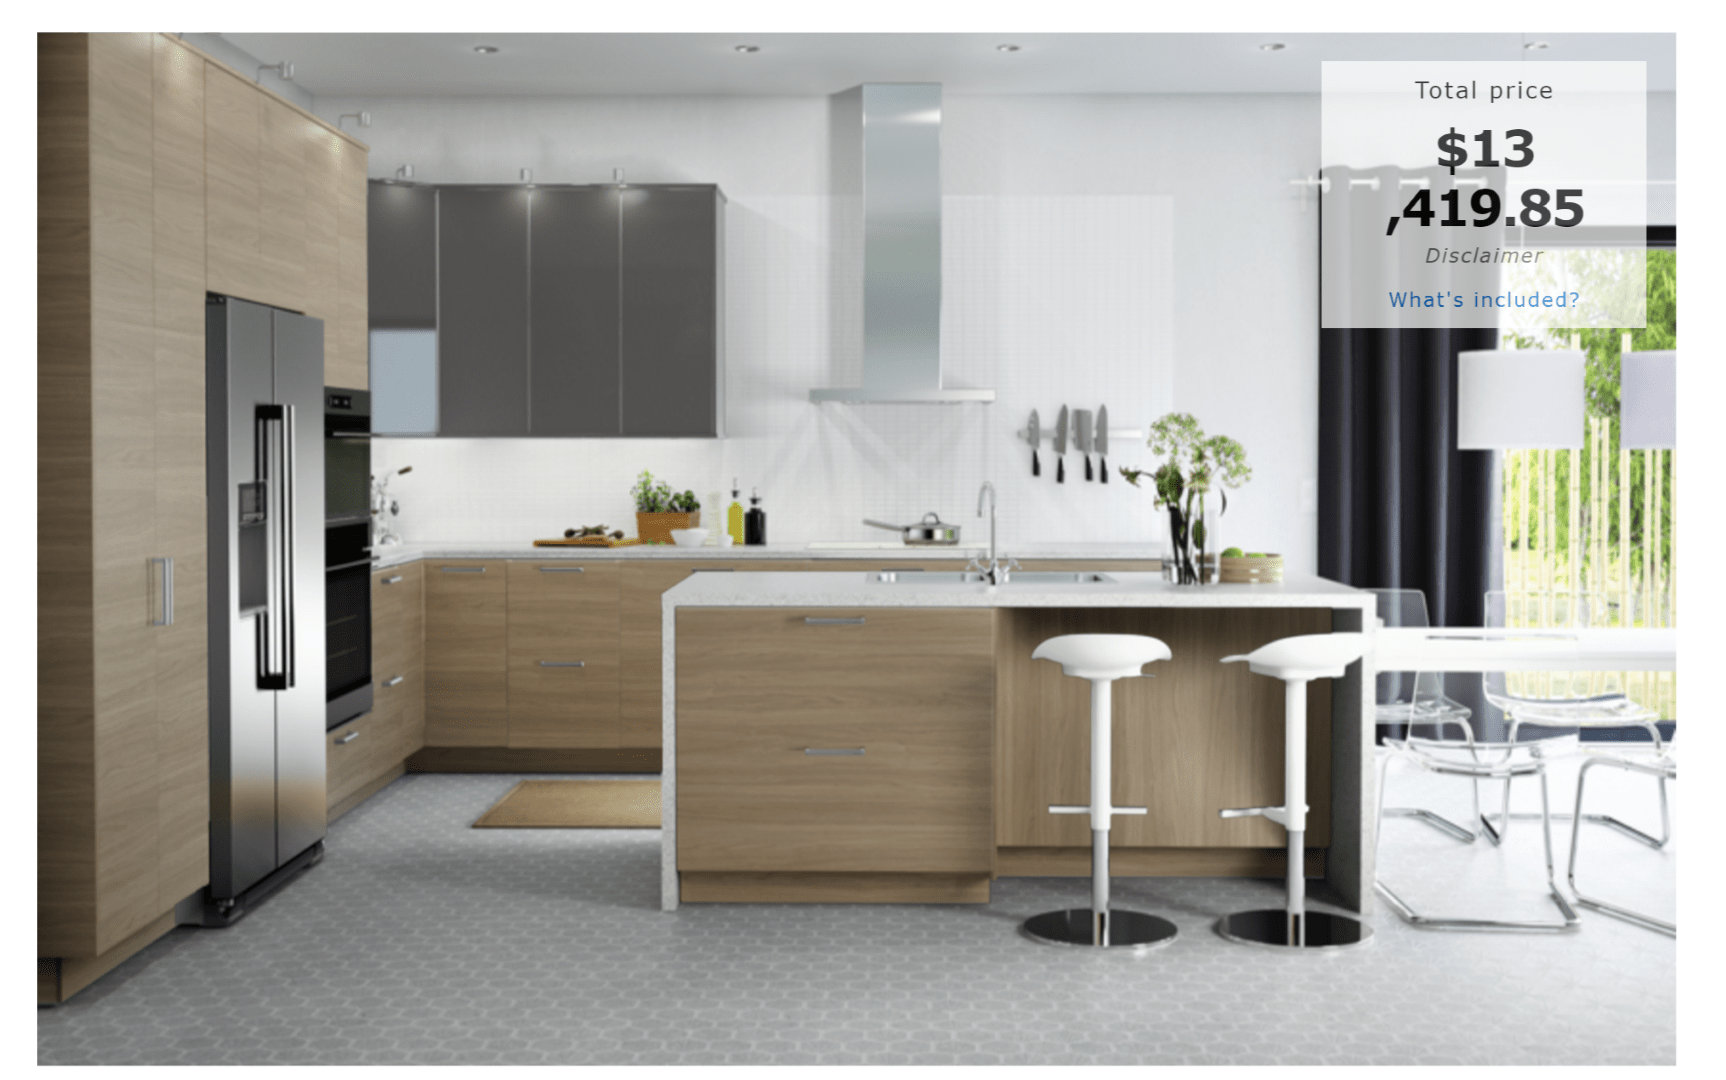 Ikea Kitchen Design Cost How Much Will An Ikea Kitchen Cost